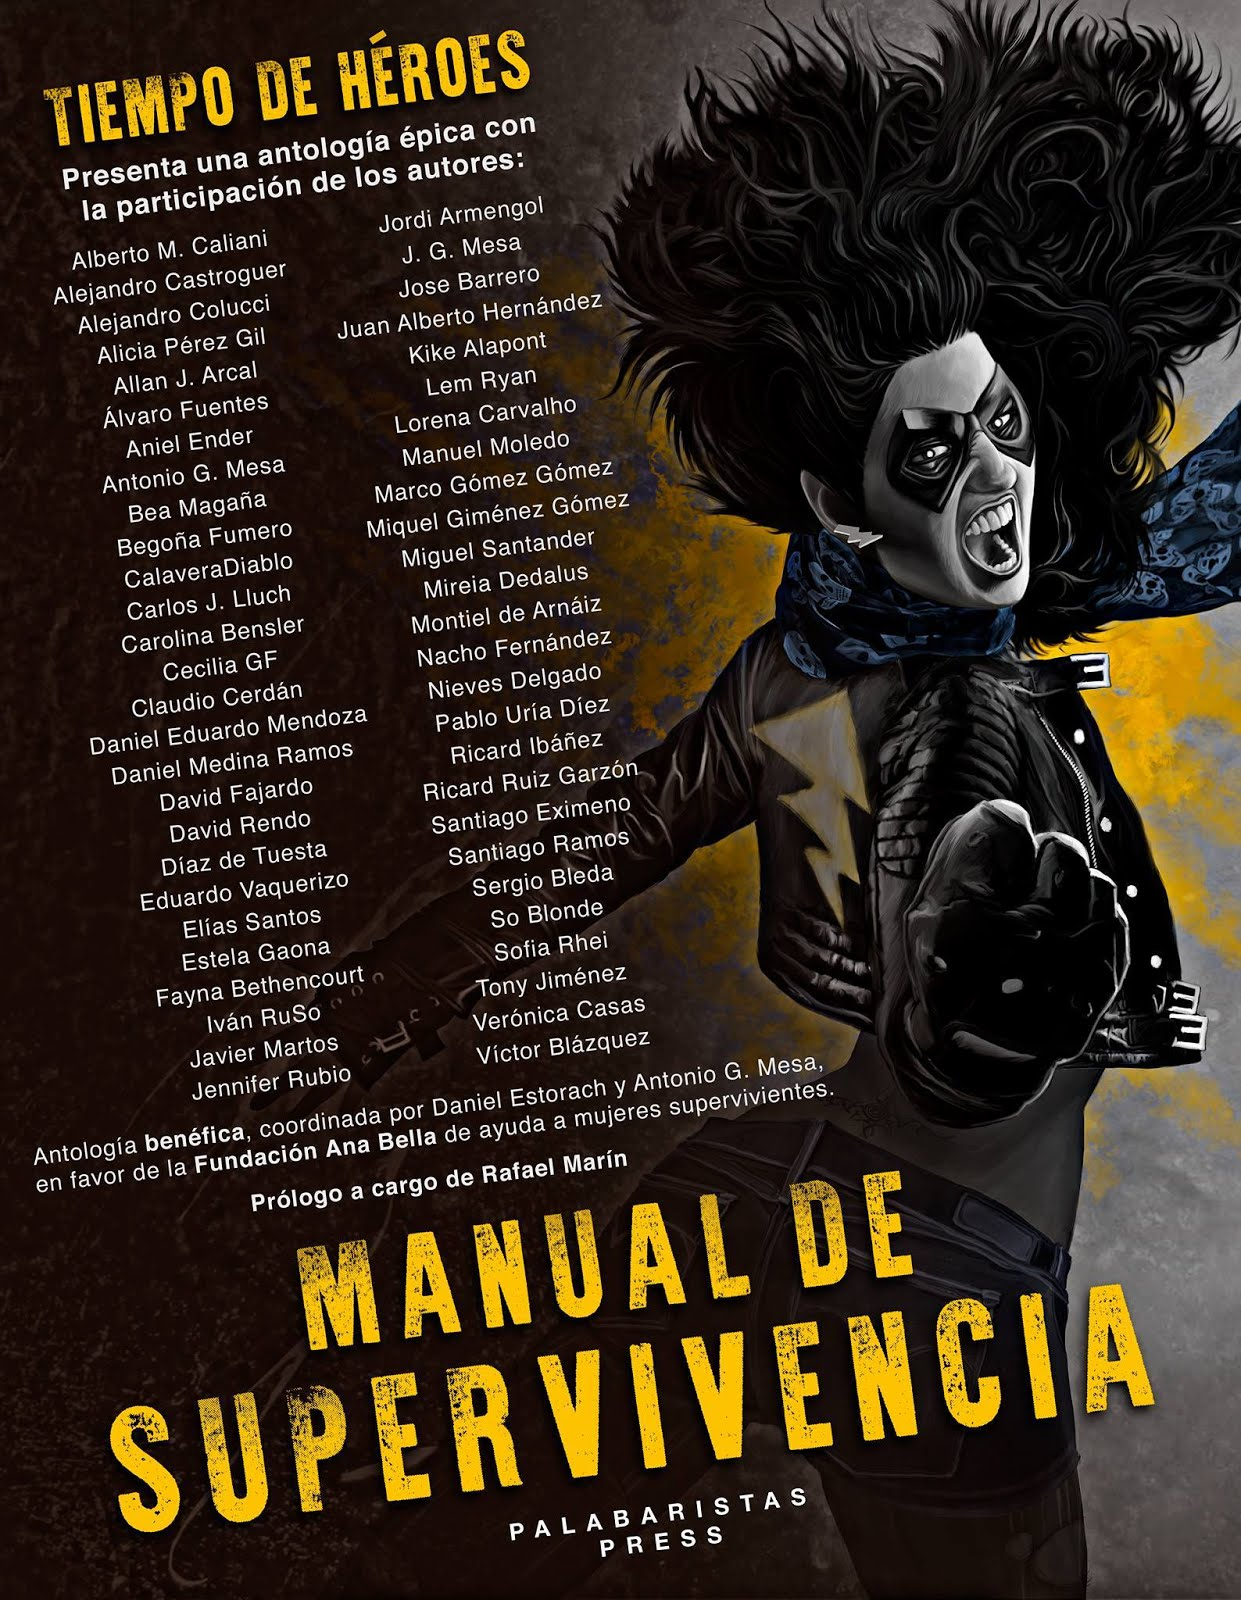 MANUAL DE SUPERVIVENCIA ya a la venta